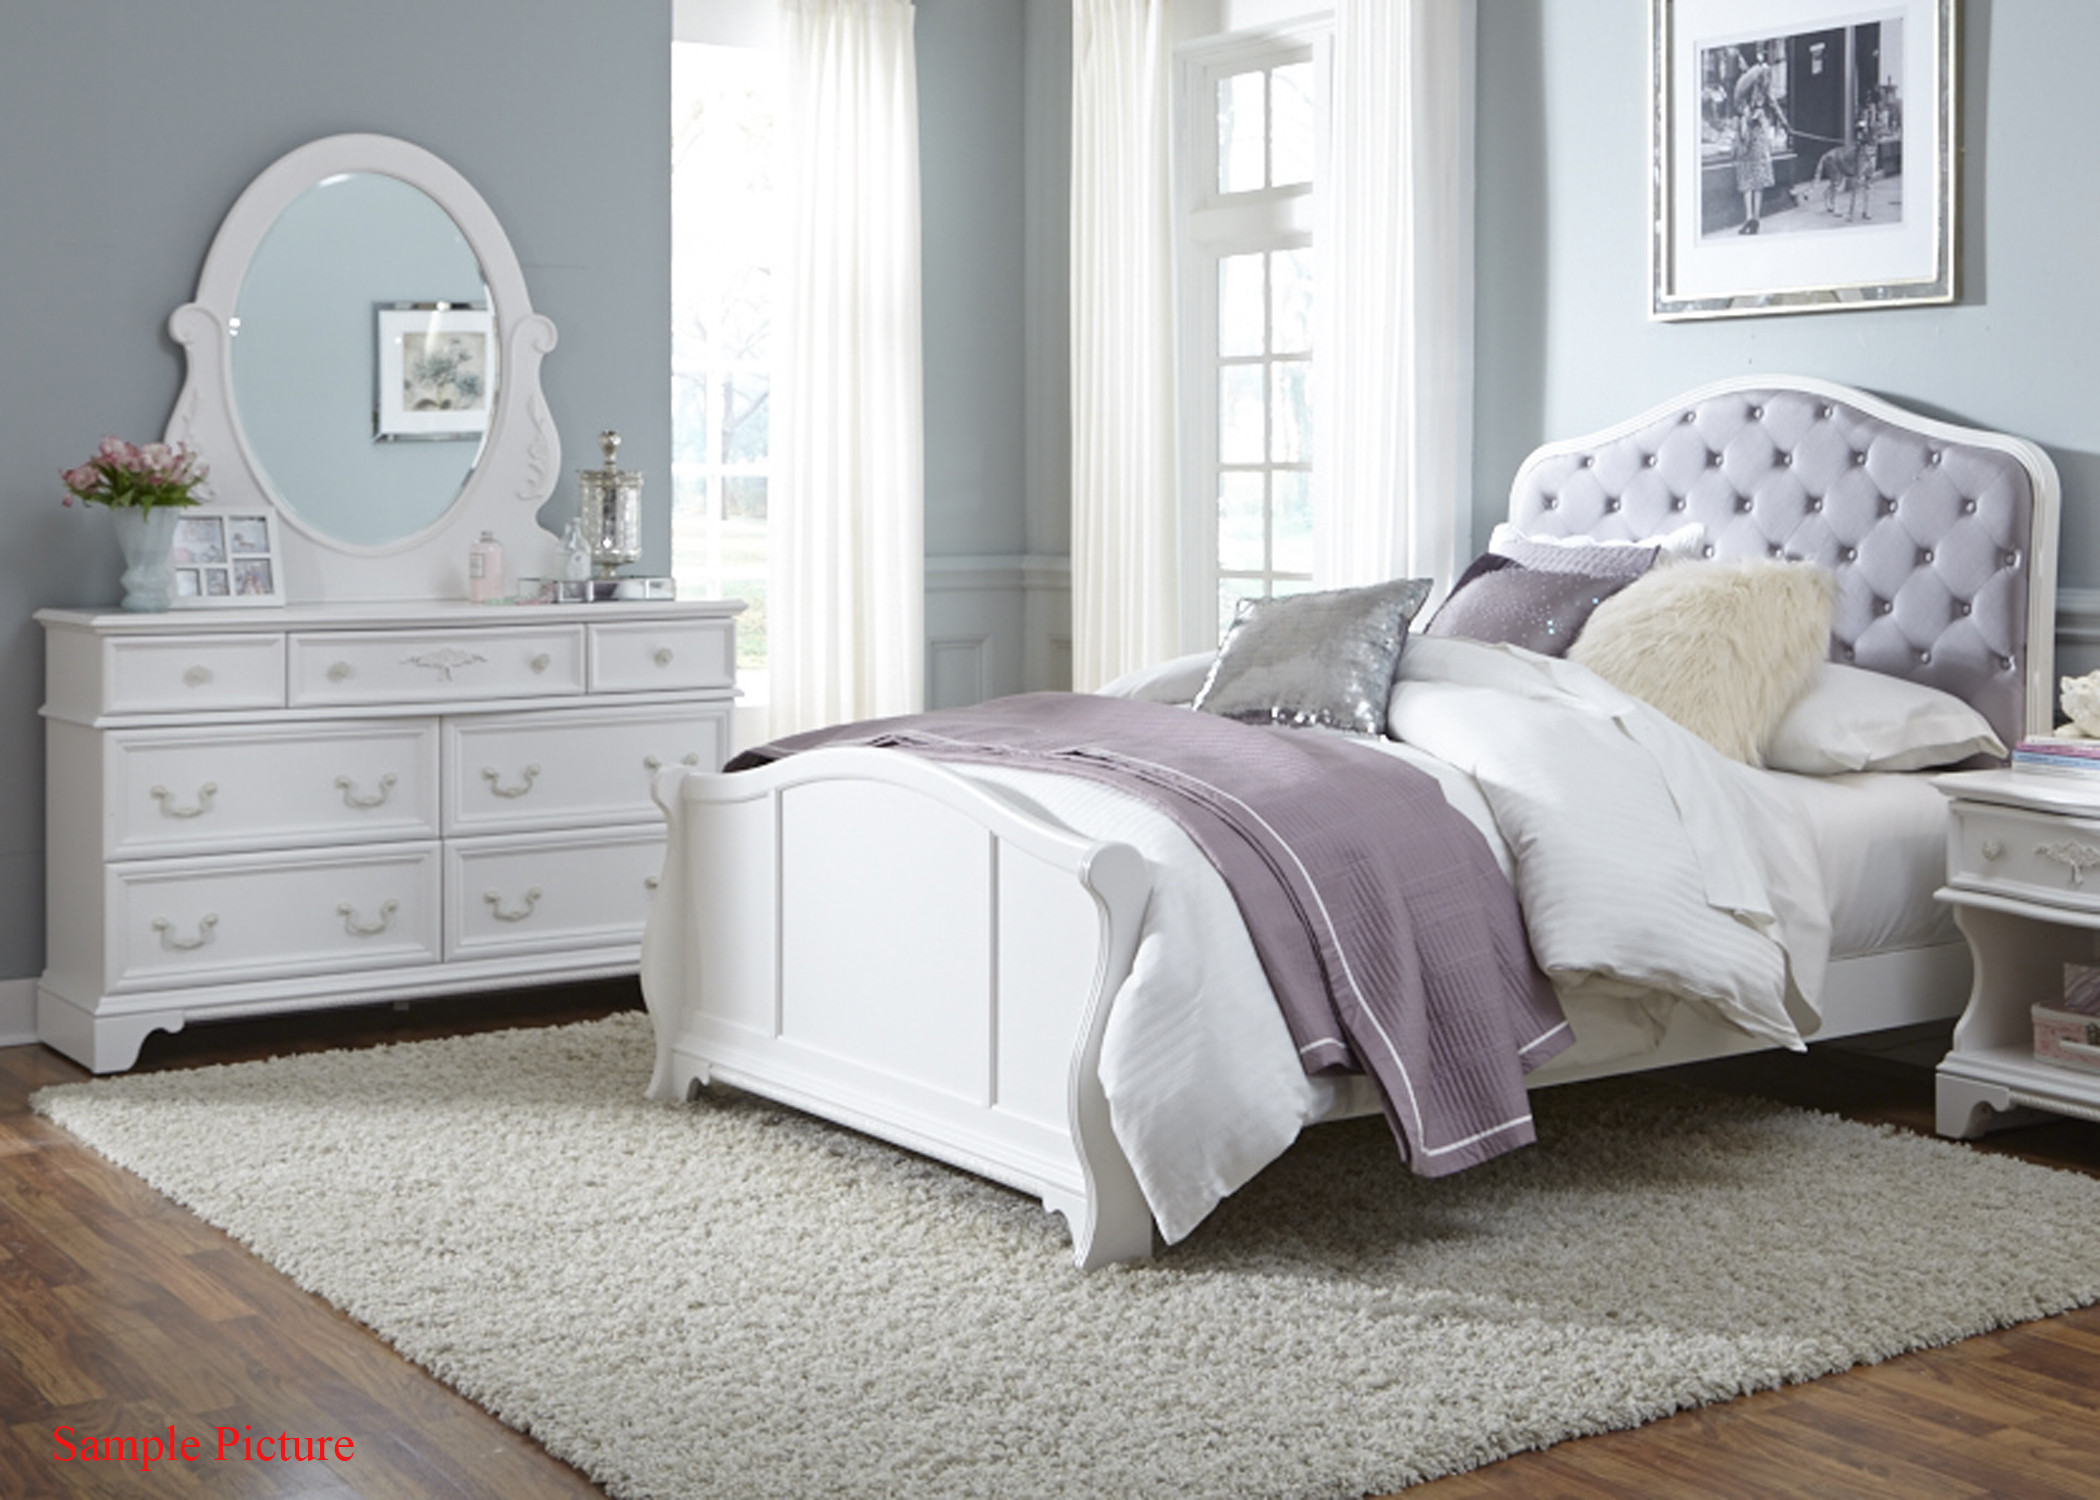 Liberty Furniture Arielle Youth Bedroom Full Bedroom Group - Item Number: 352-YBR-FPBDM